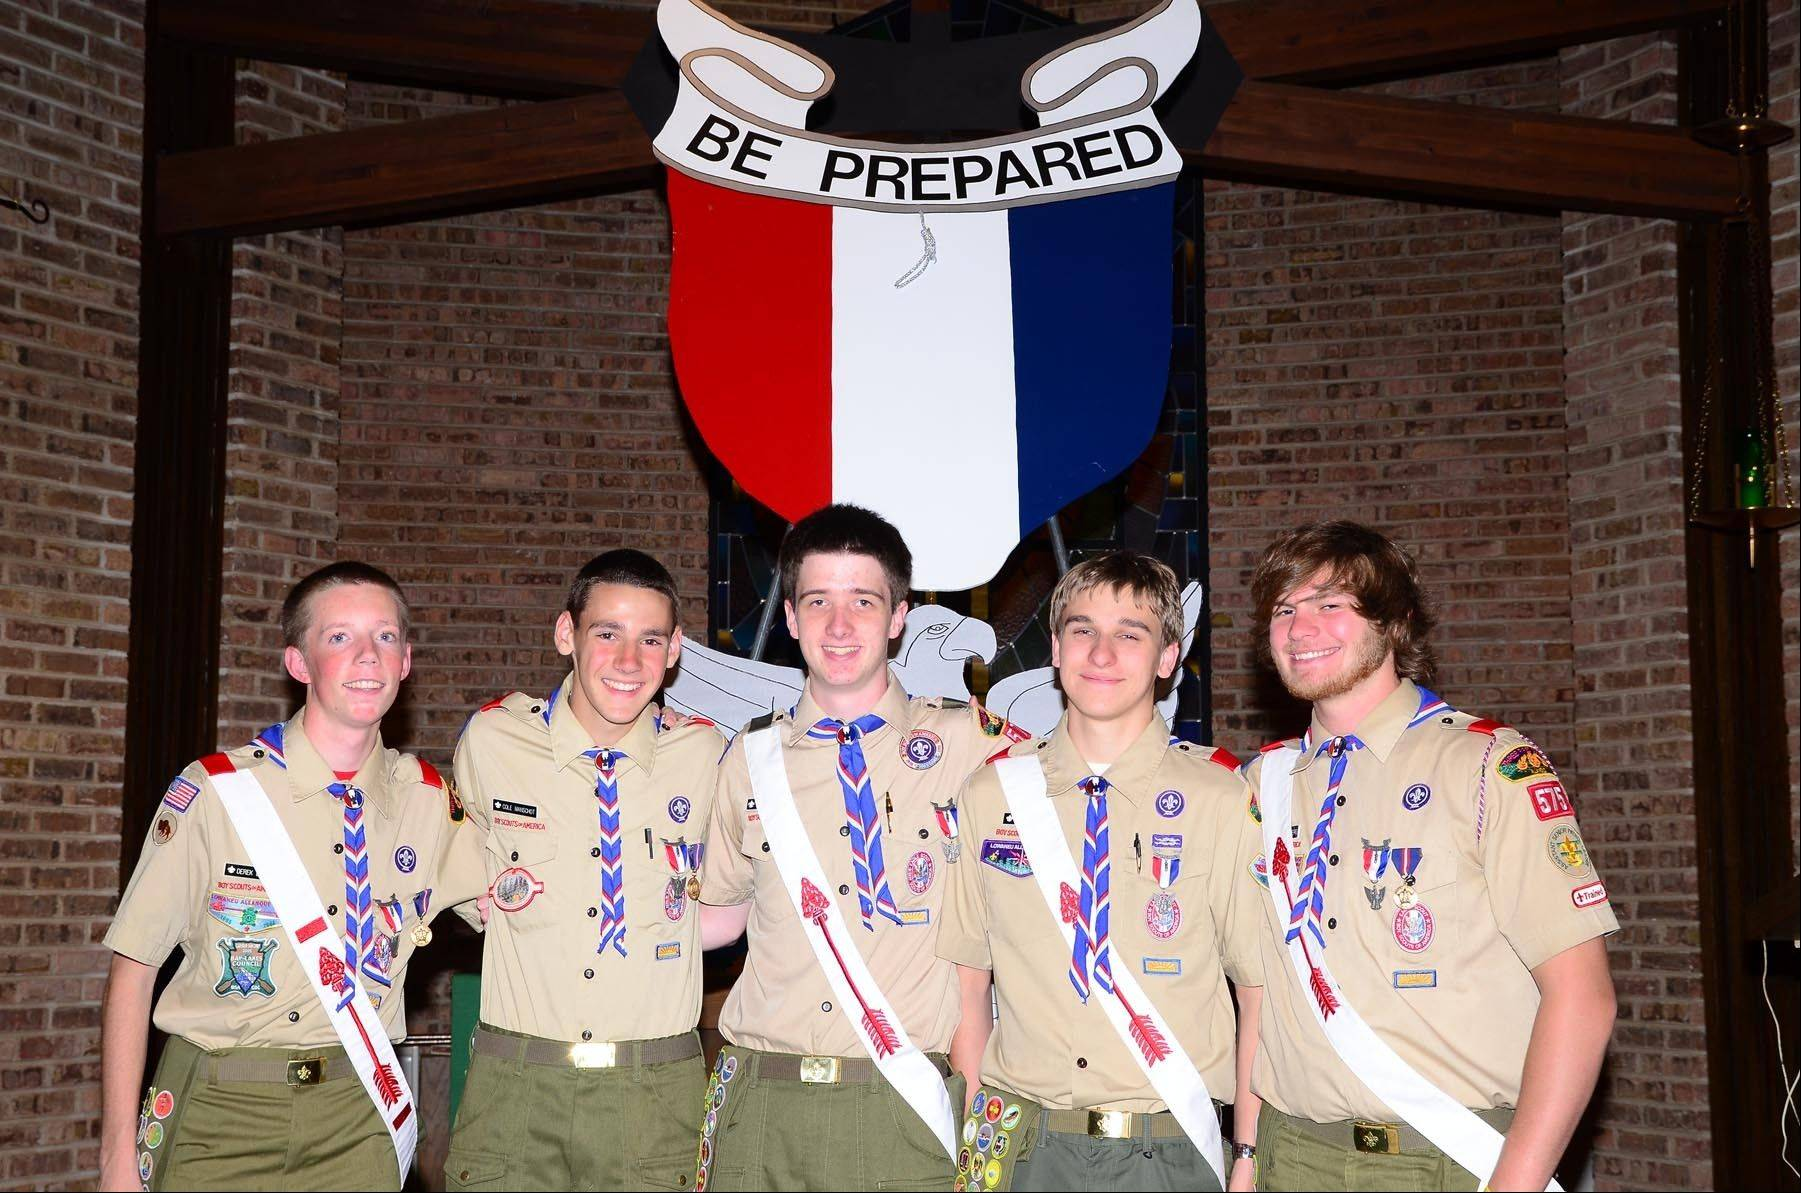 Boy Scouts from Winfield Boy Scout Troop 575's Bison Patrol received Scouting's highest rank, the rank of Eagle Scout. From left are Derek Breese, Cole Manschot, Anthony Roman, John Eganhouse and Mike Weinberg.